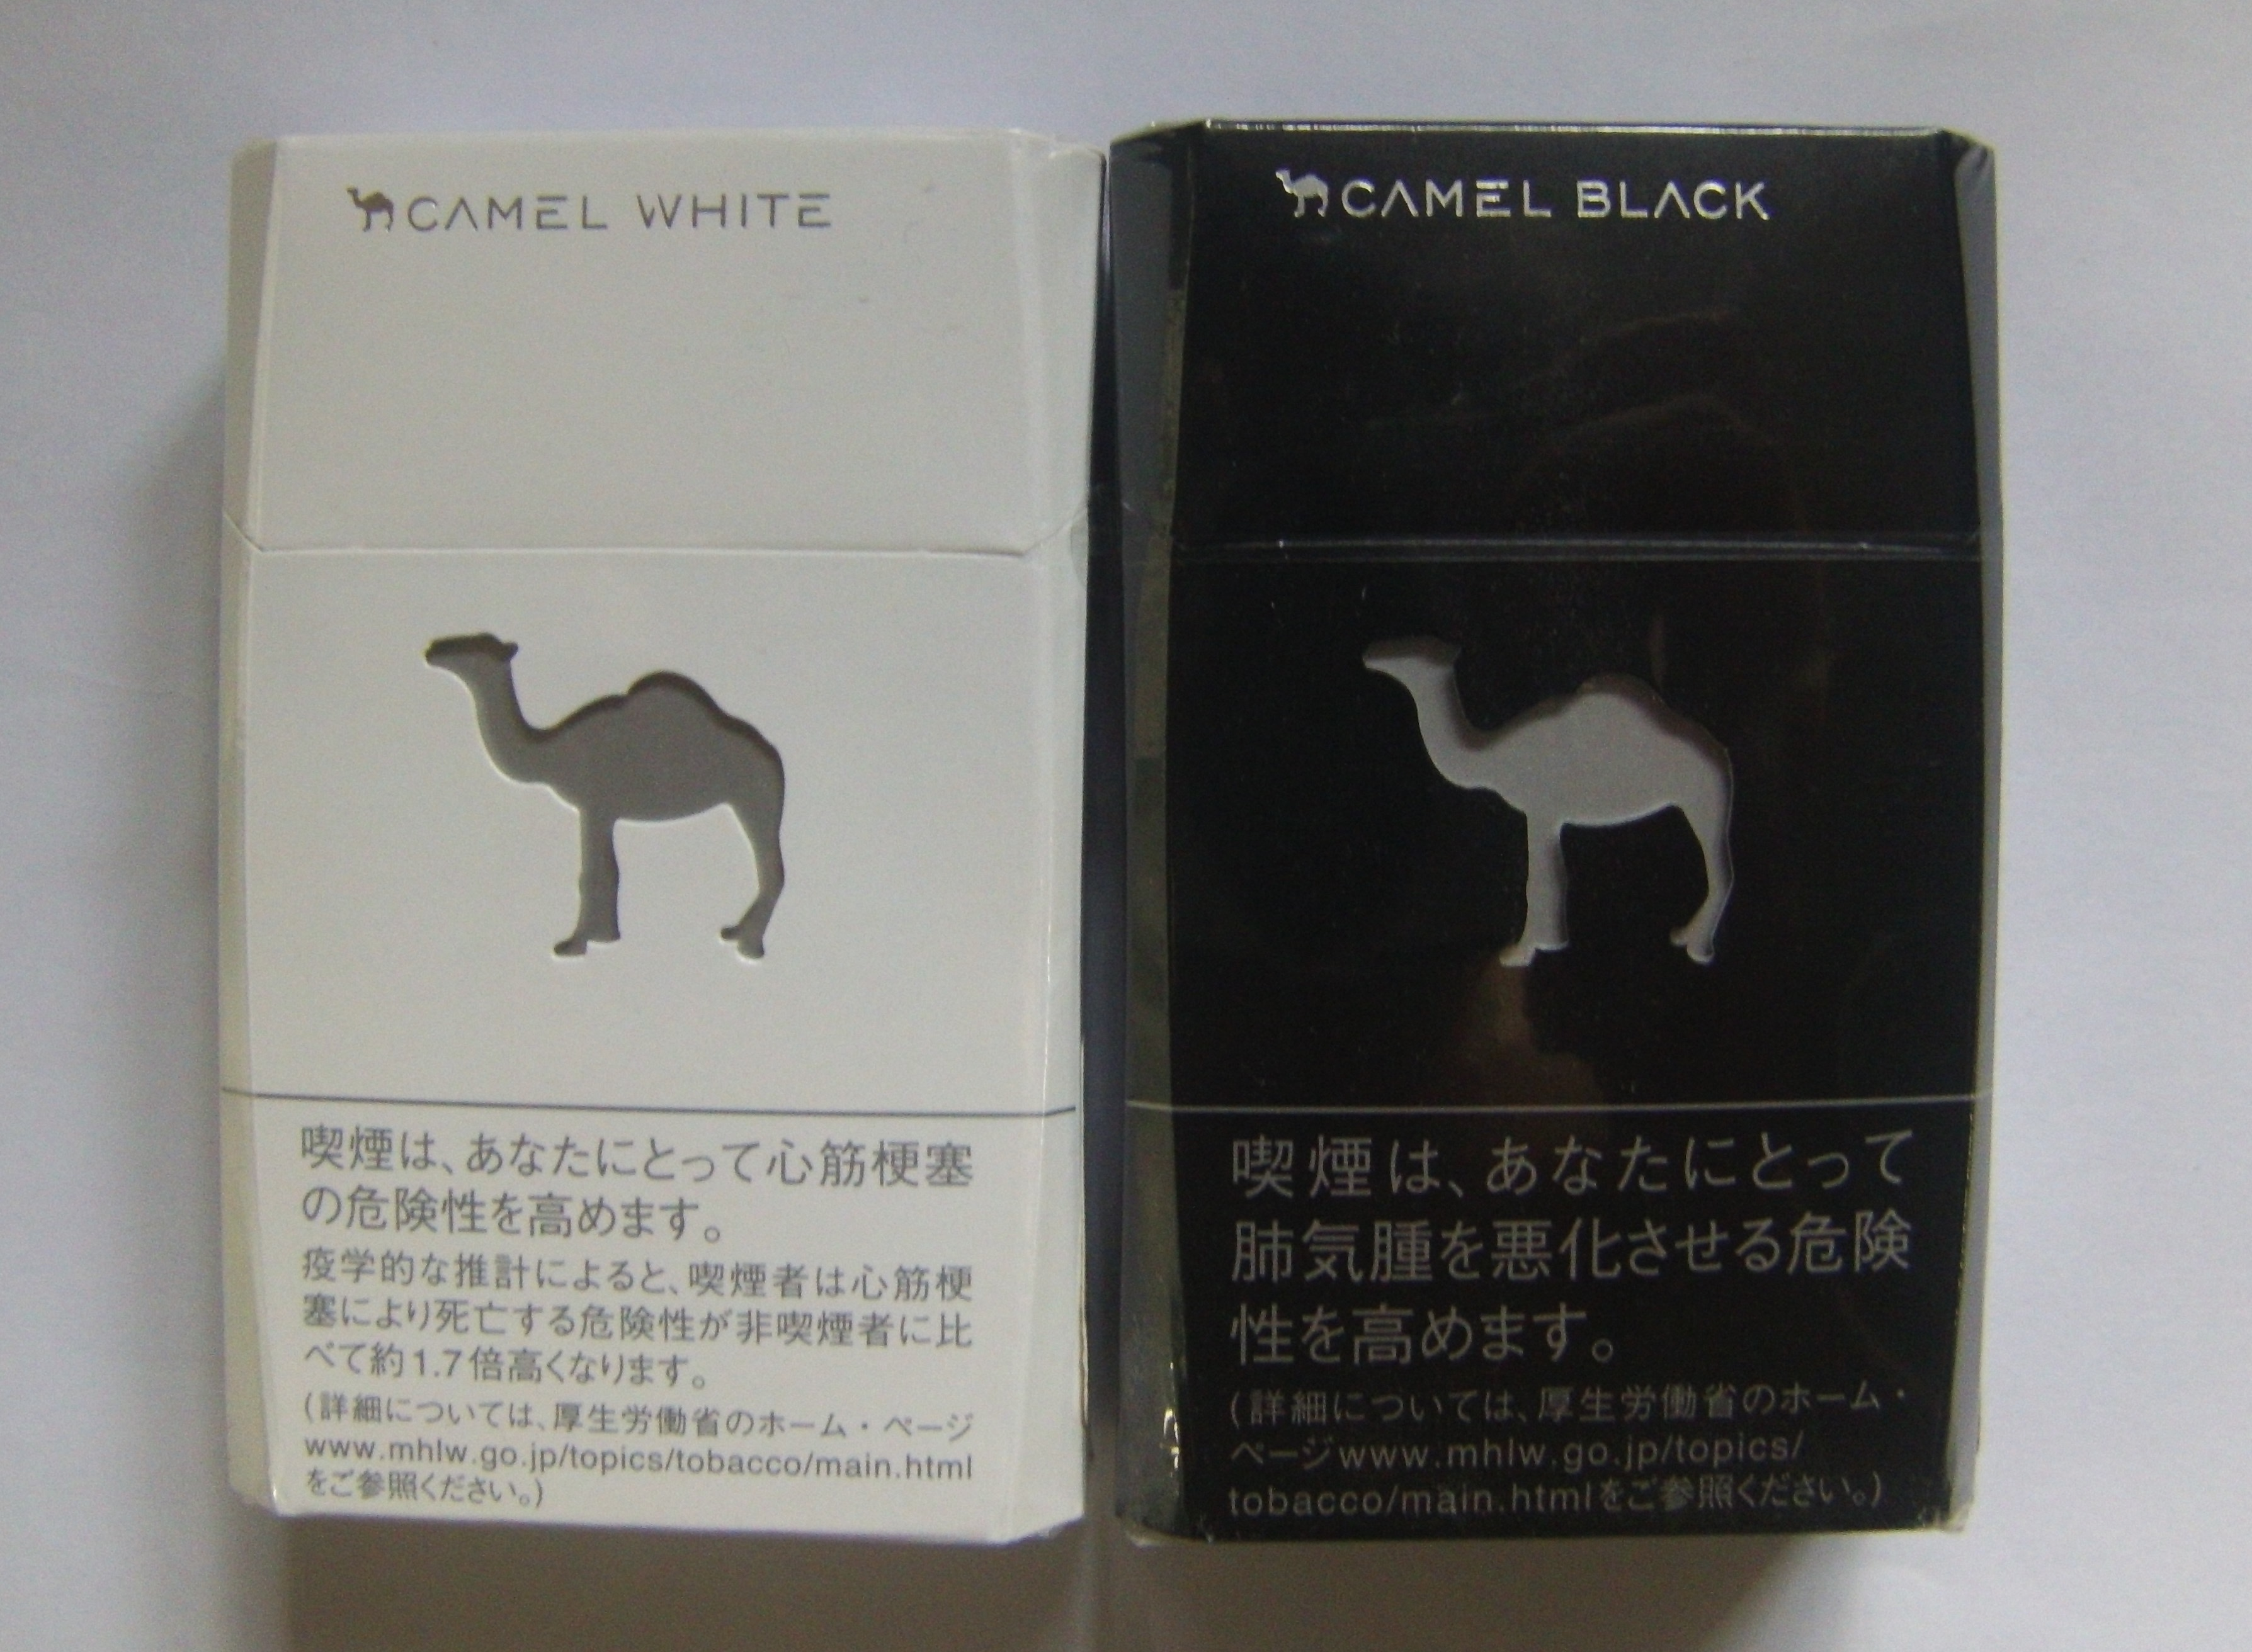 Camel Ultra Light Nicotine Content